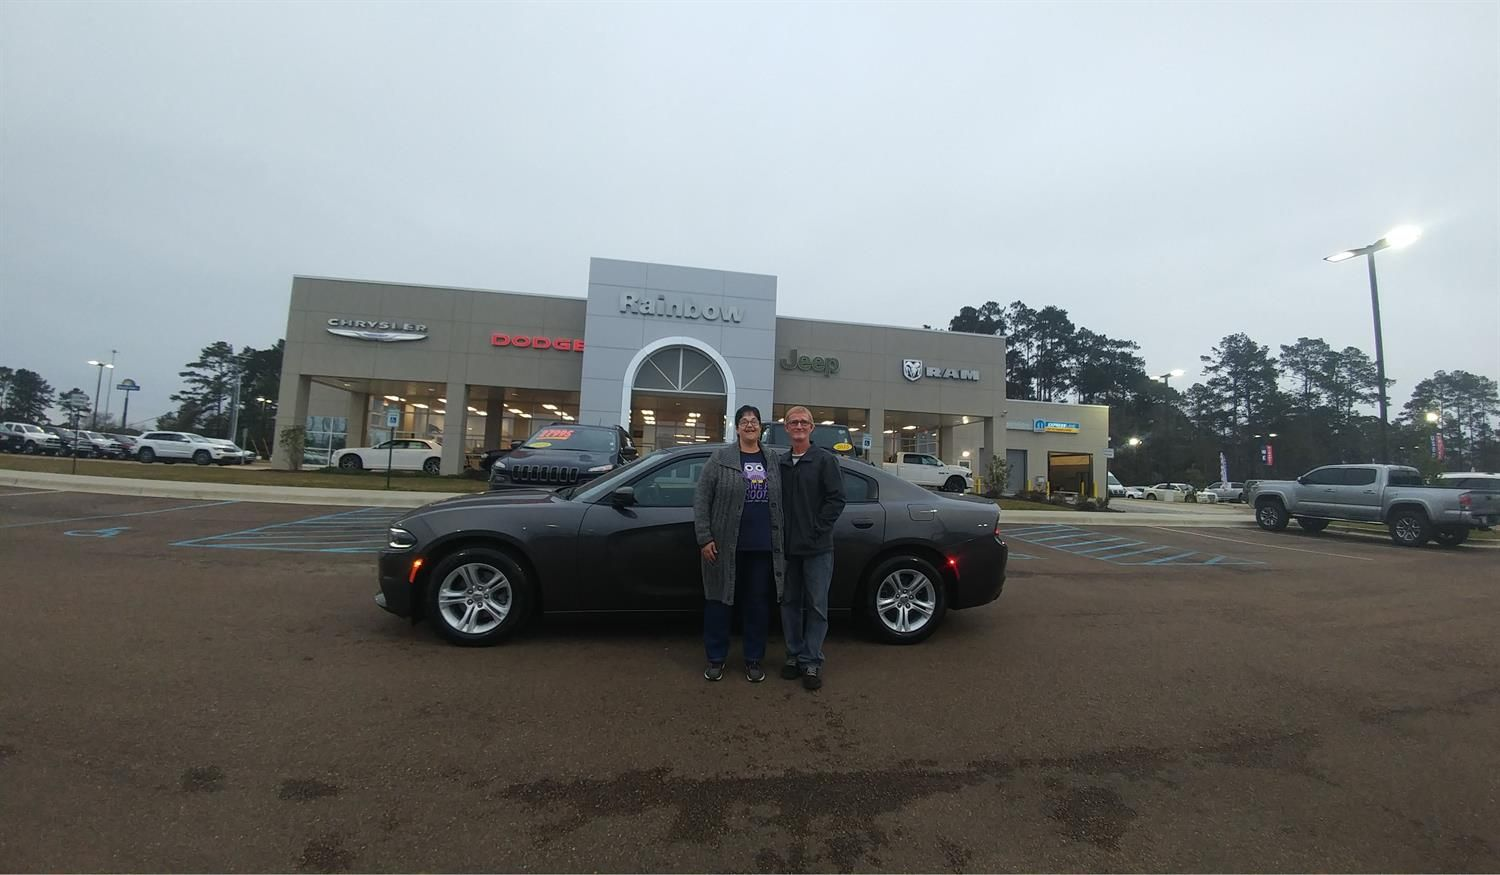 Rhonda and Myron's new 2018 DODGE CHARGER! Congratulations and best